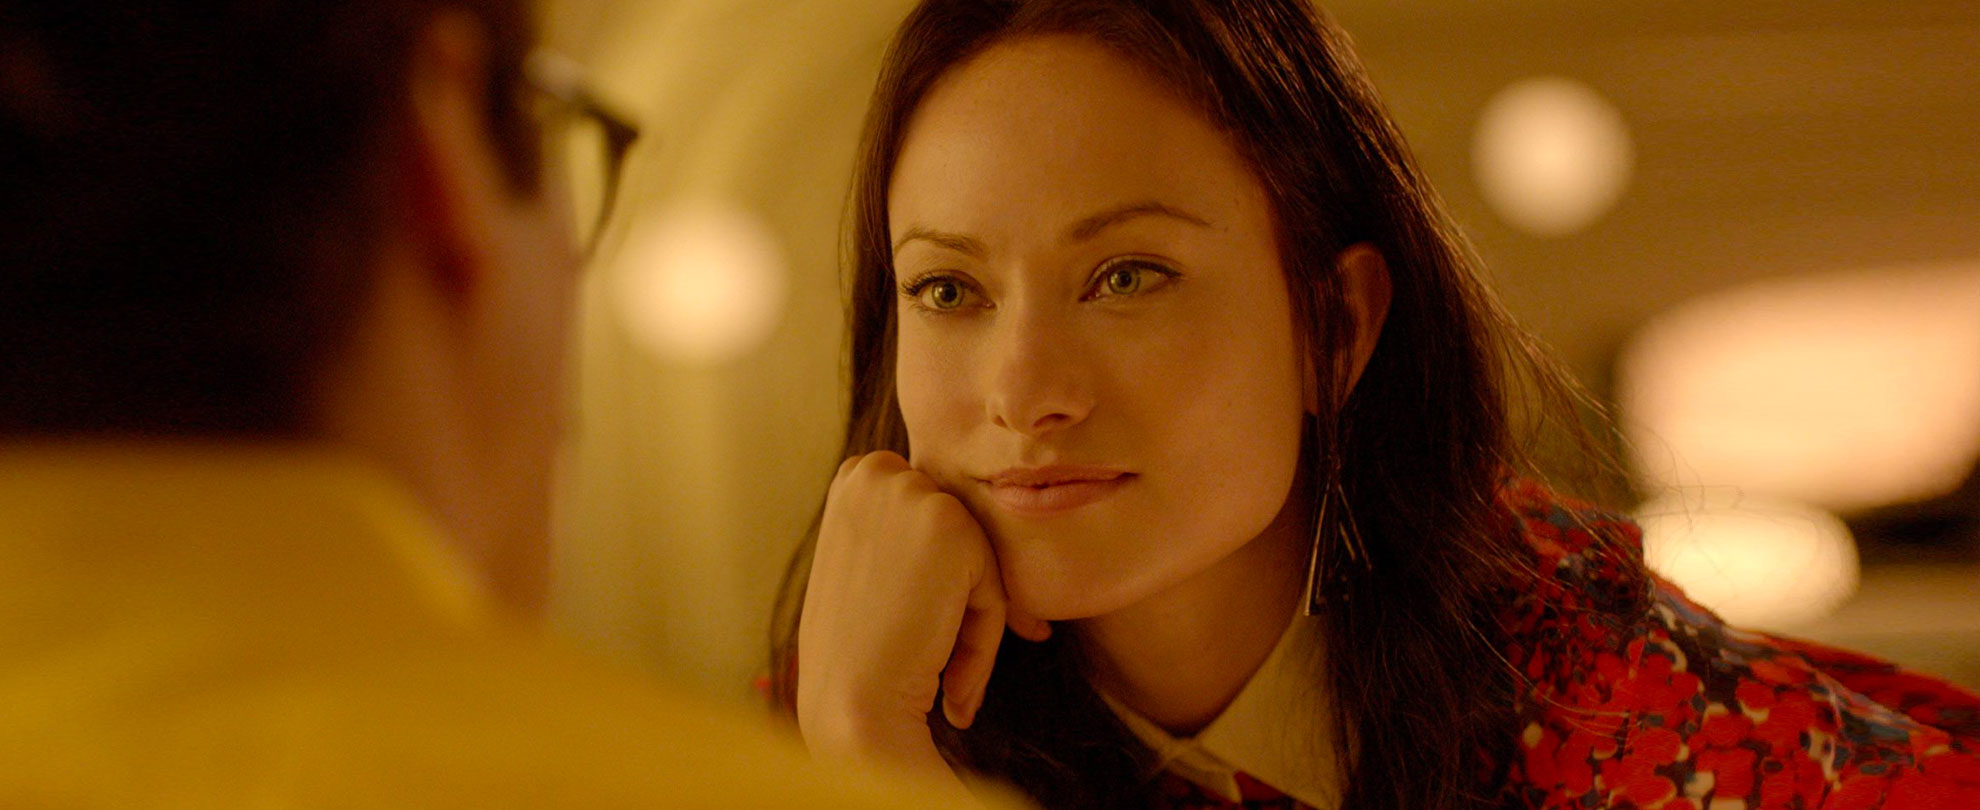 "Saban Films Takes a Stand with Olivia Wilde on ""A Vigilante"" with Directv"